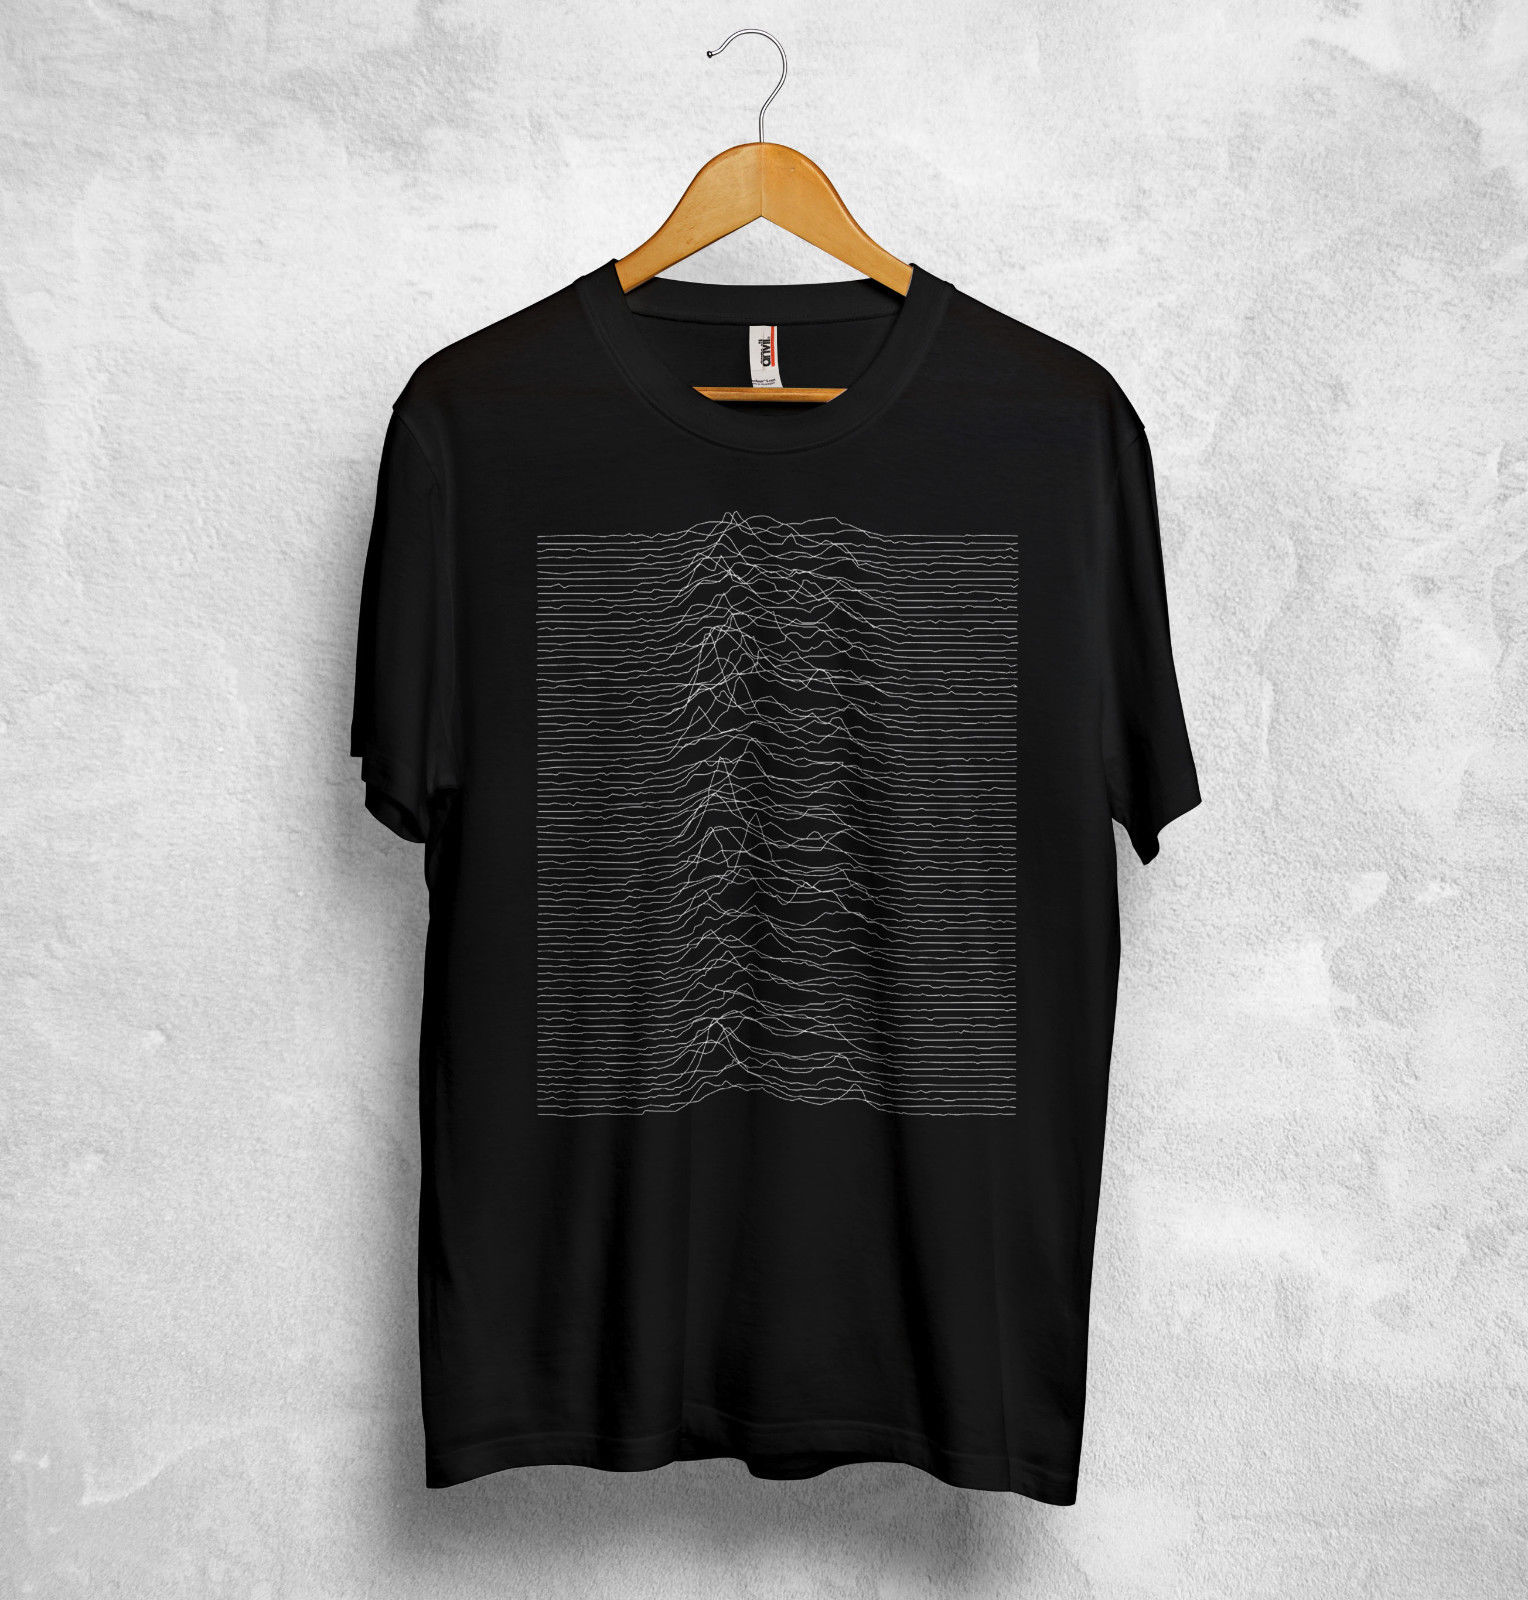 Unknown Pleasures T Shirt Top Joy Division English Rock Transmission The Cure New Fashion for Men T-Shirt Sleeve Top Tee